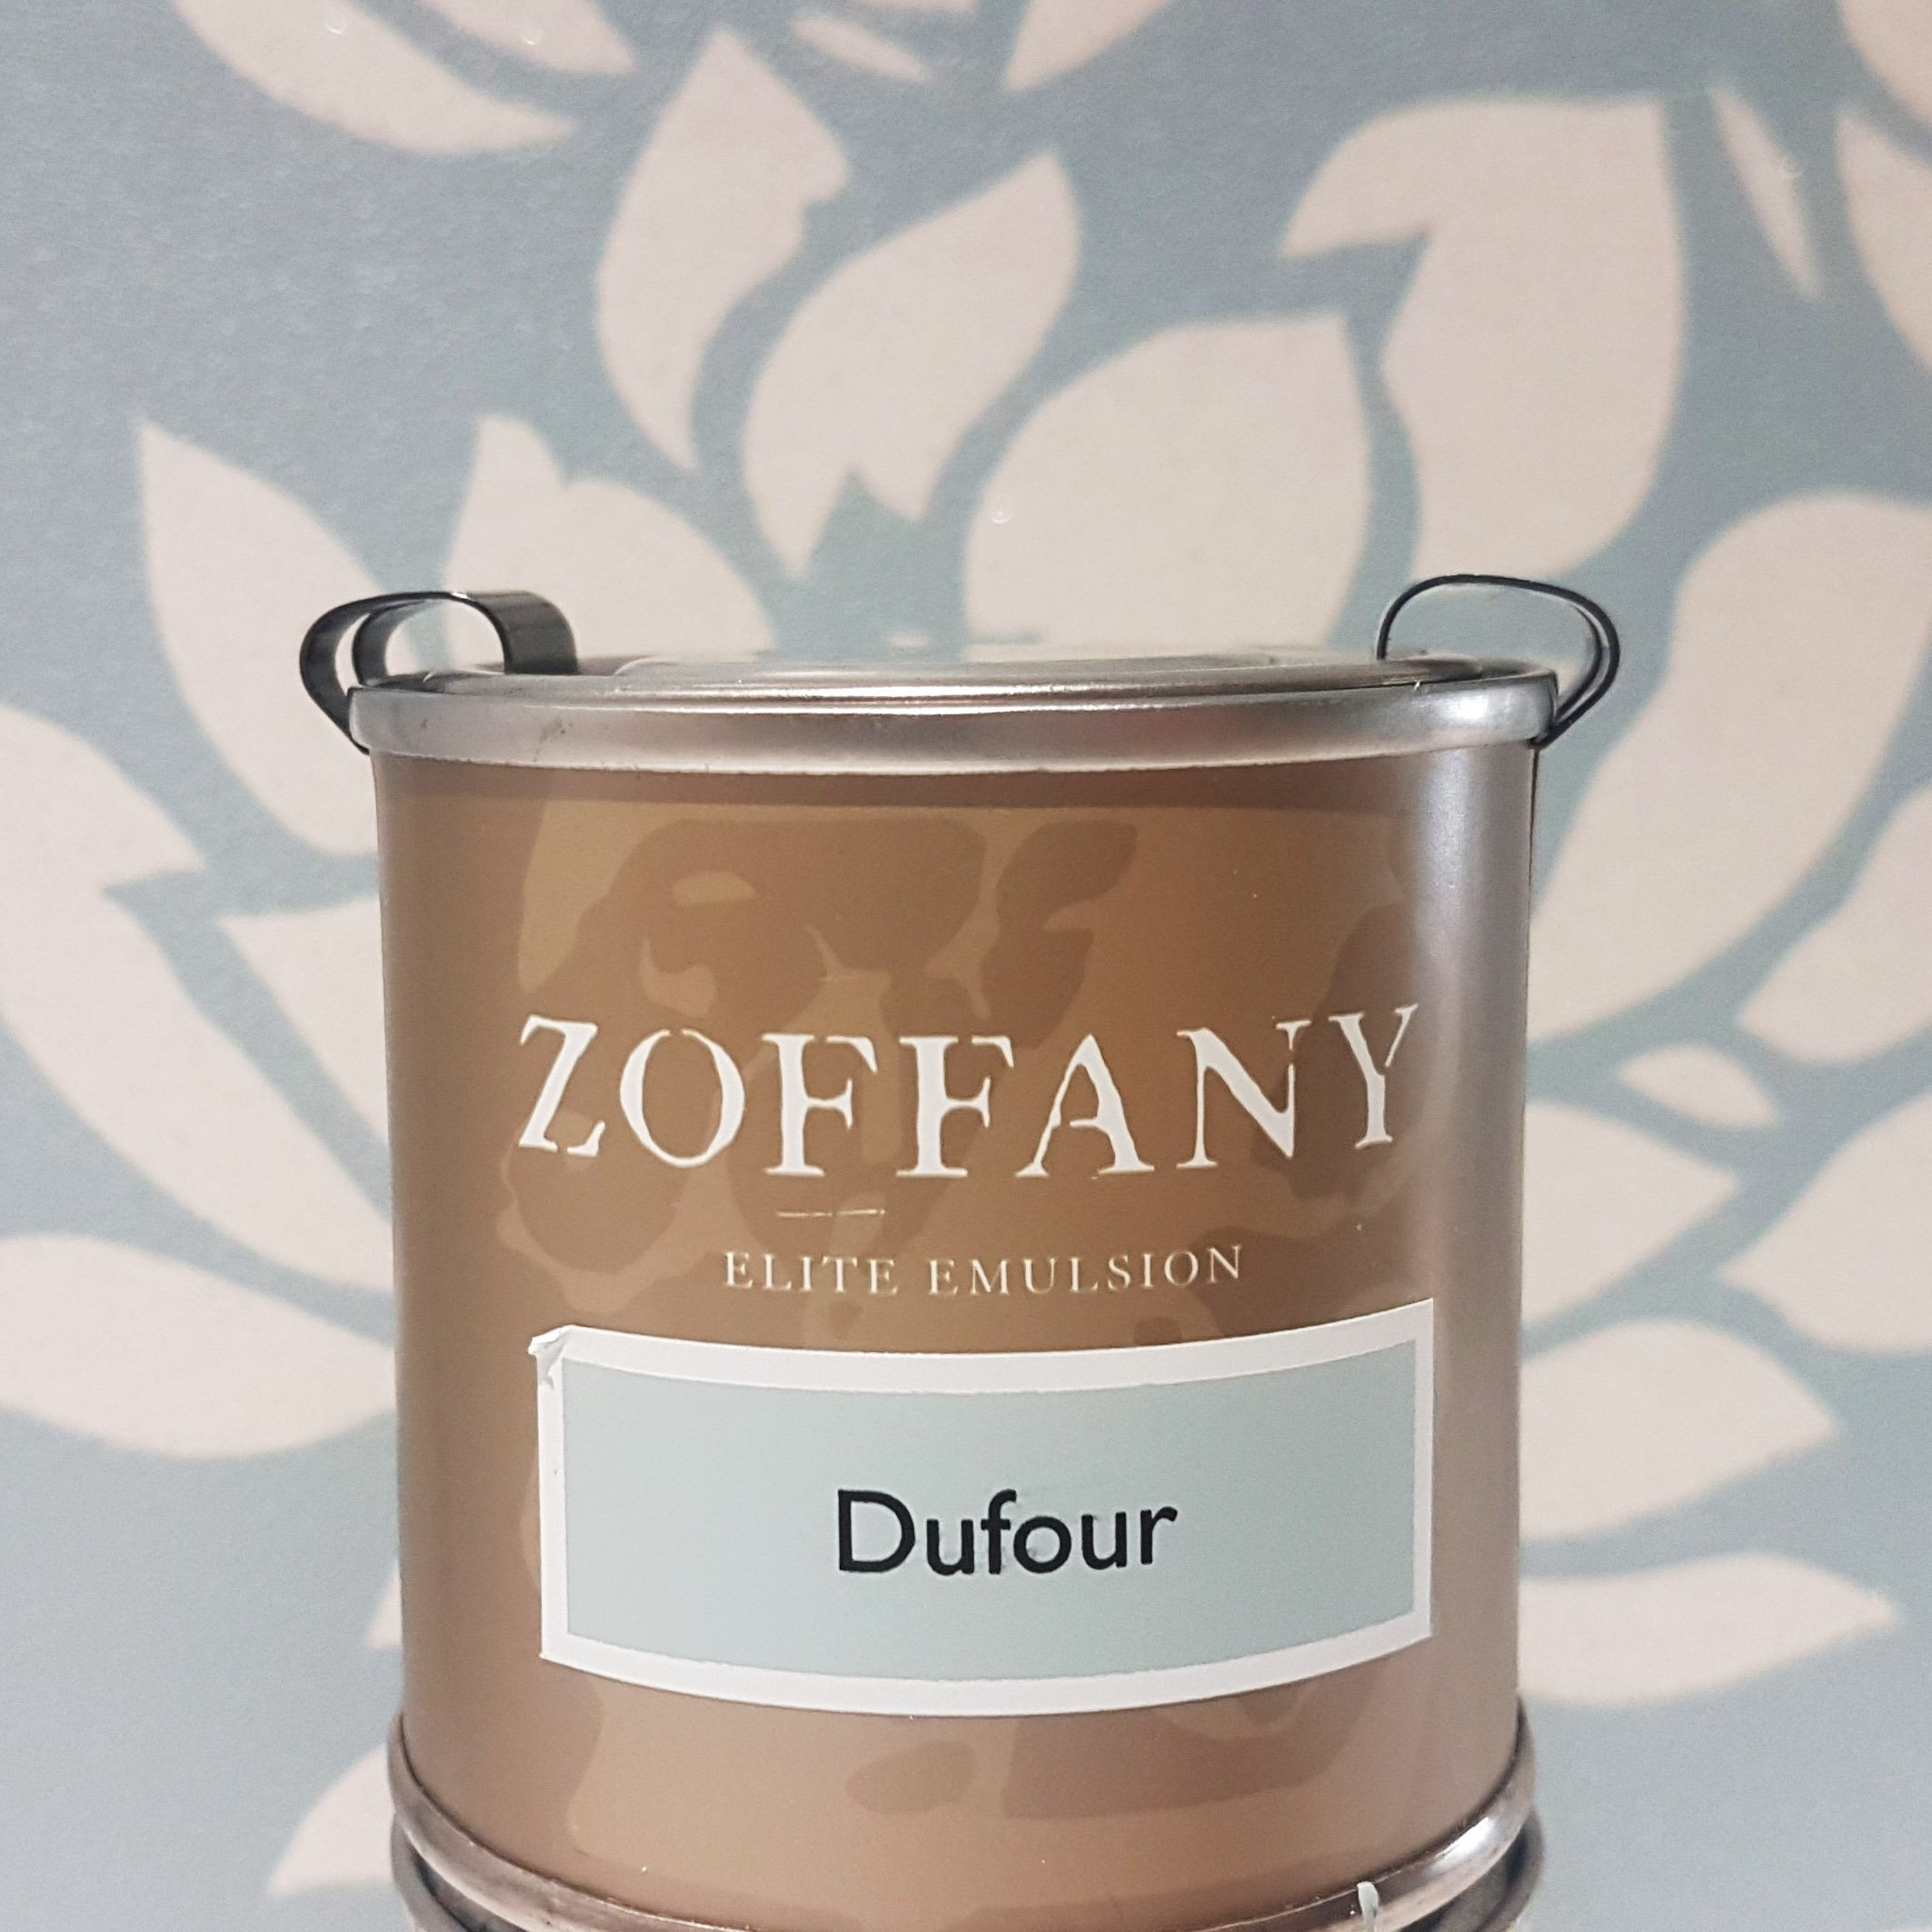 Under £100 - Zoffany Paint Dufour Wallpaper